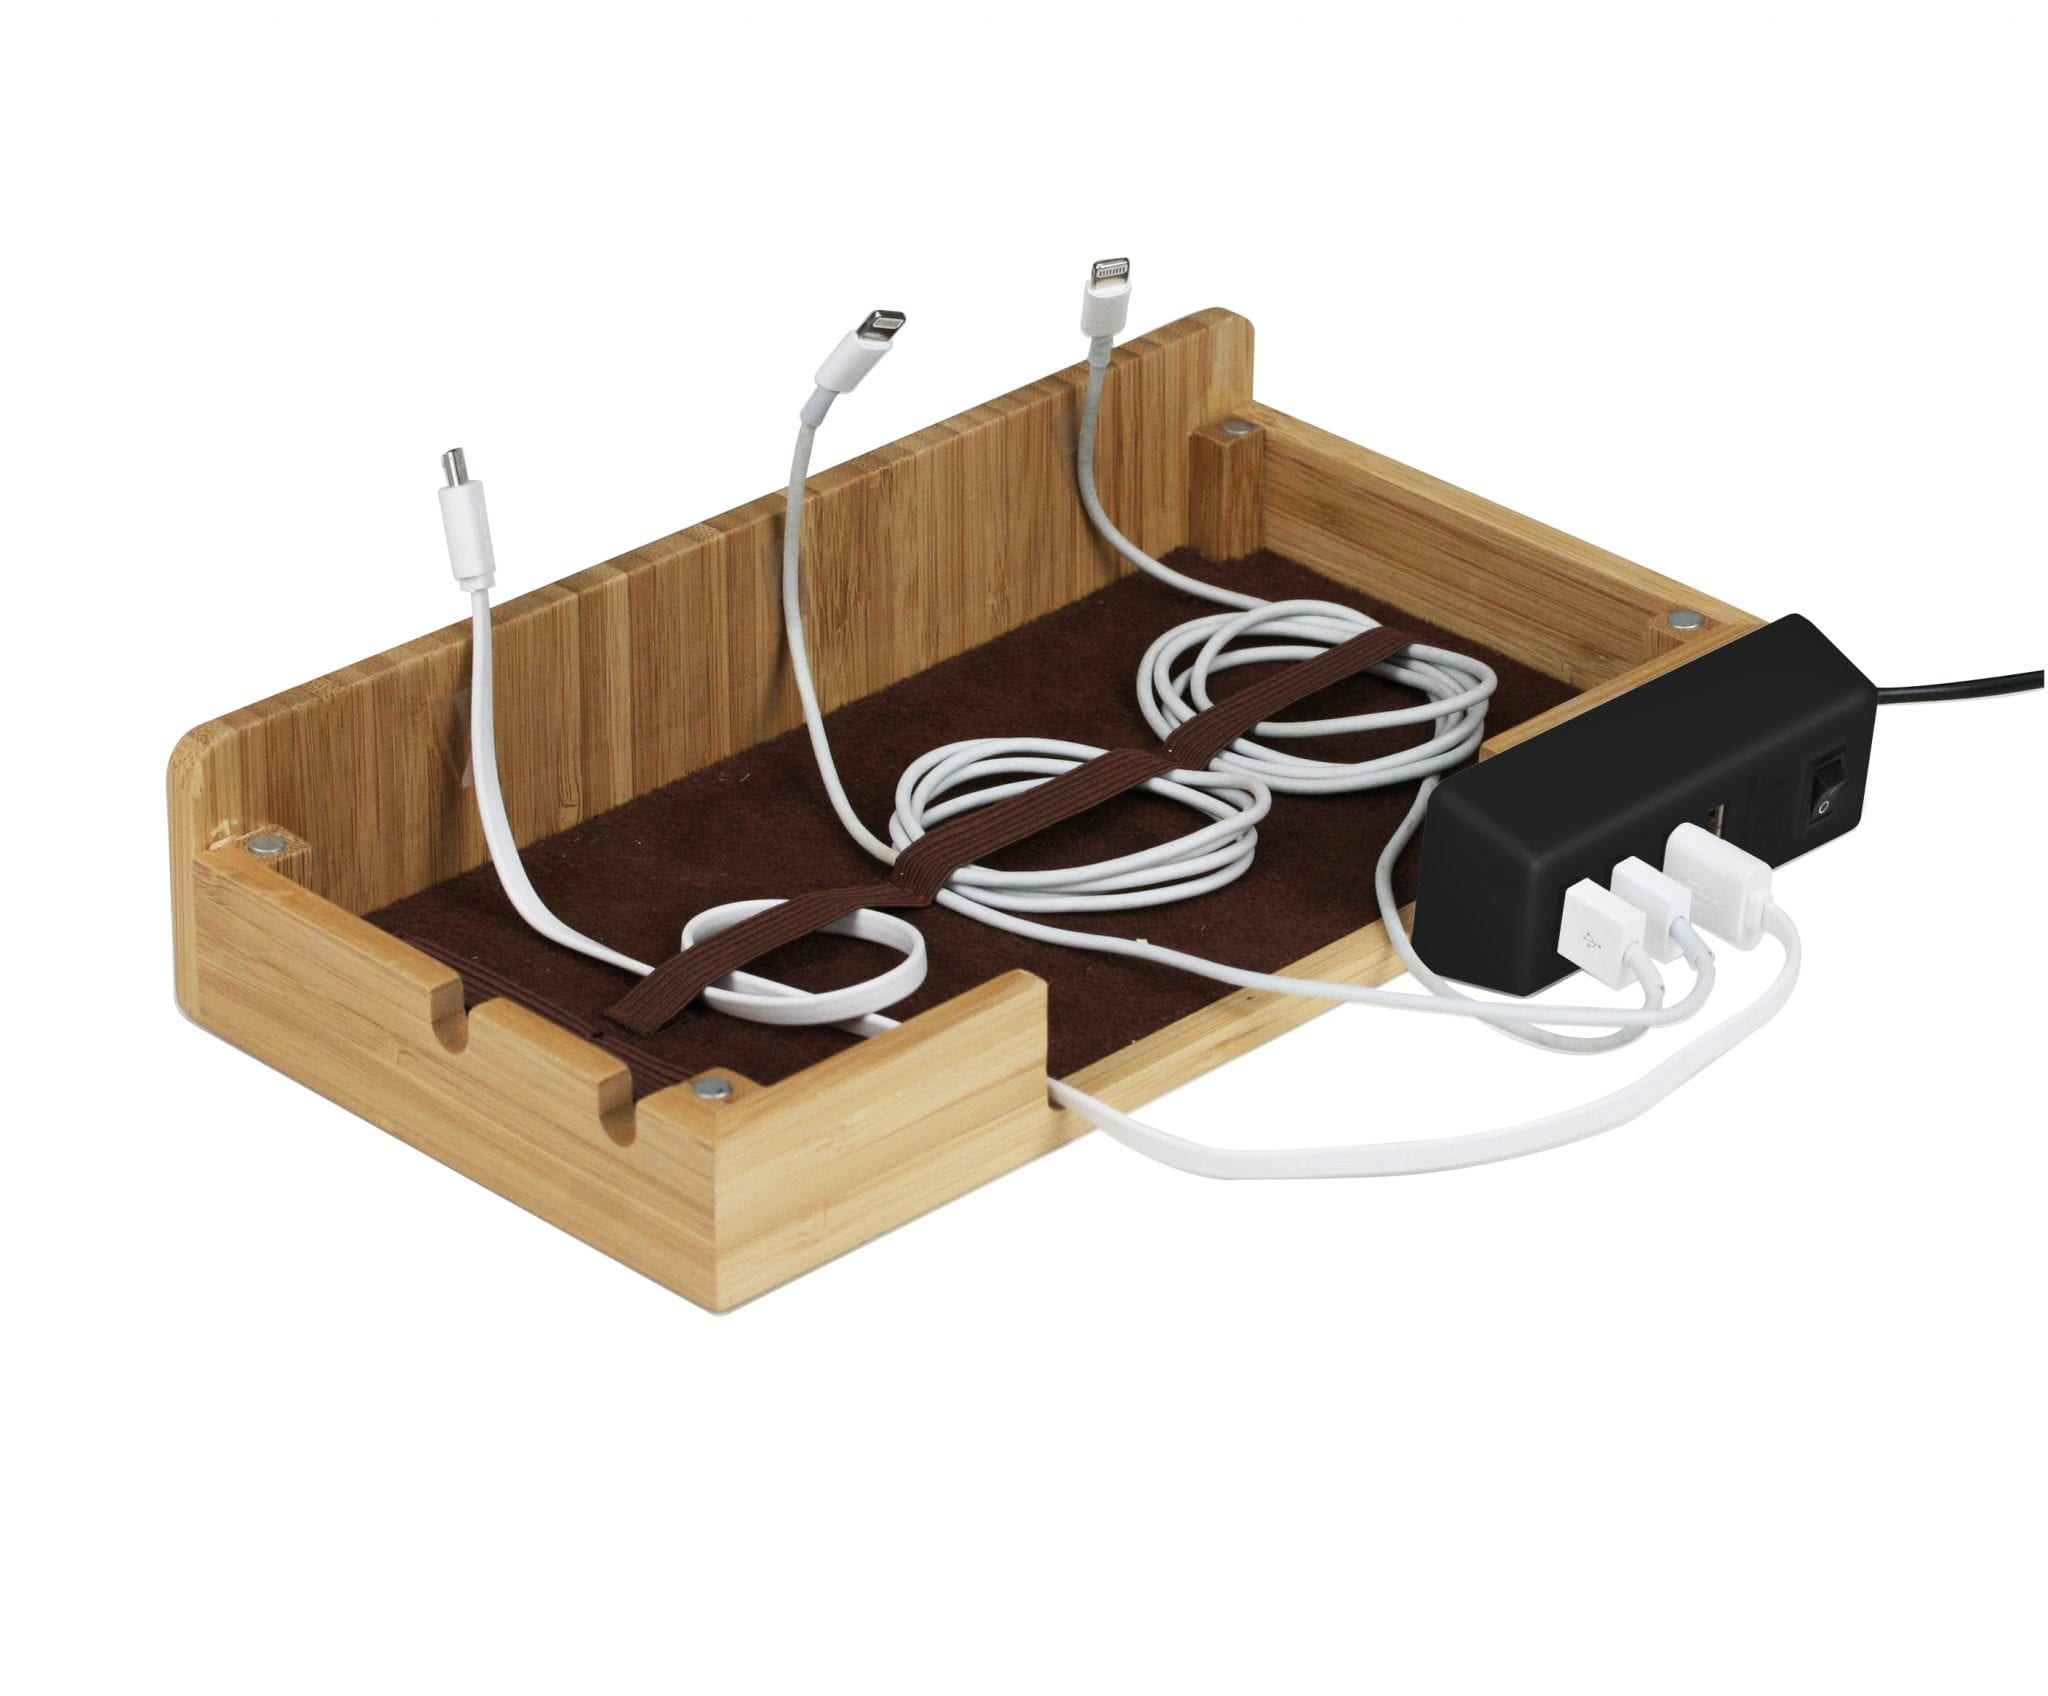 bamboo_multi base_USB